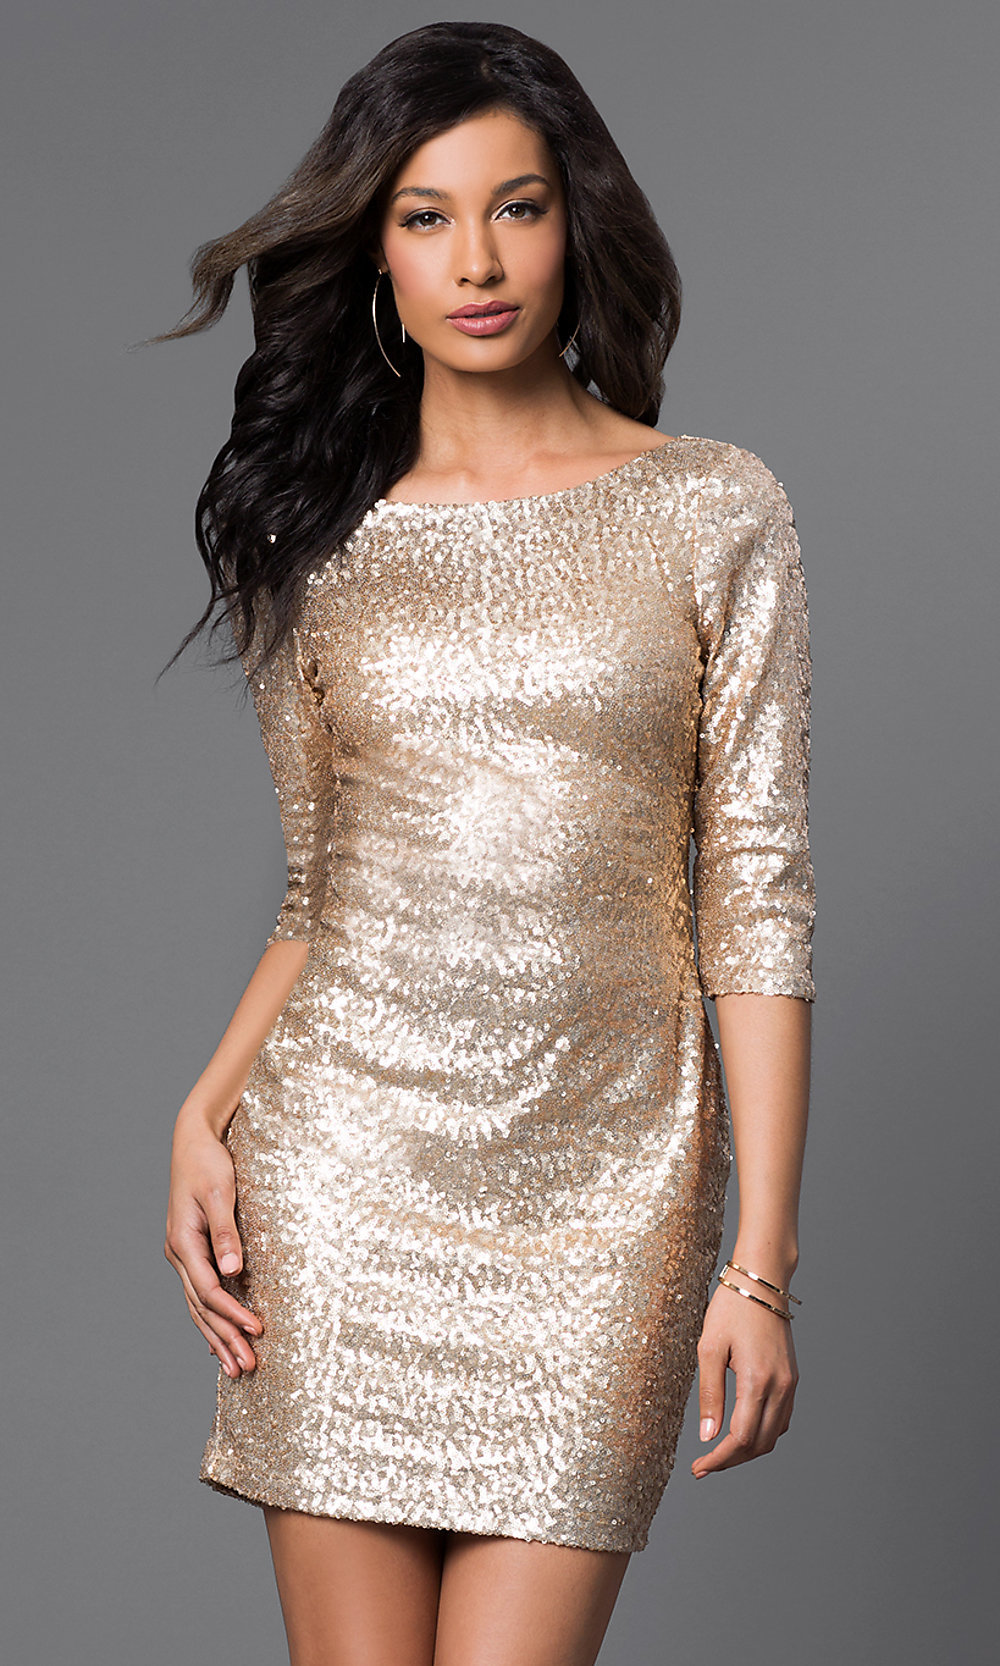 Short Gold Sequin Dress With Long Sleeves